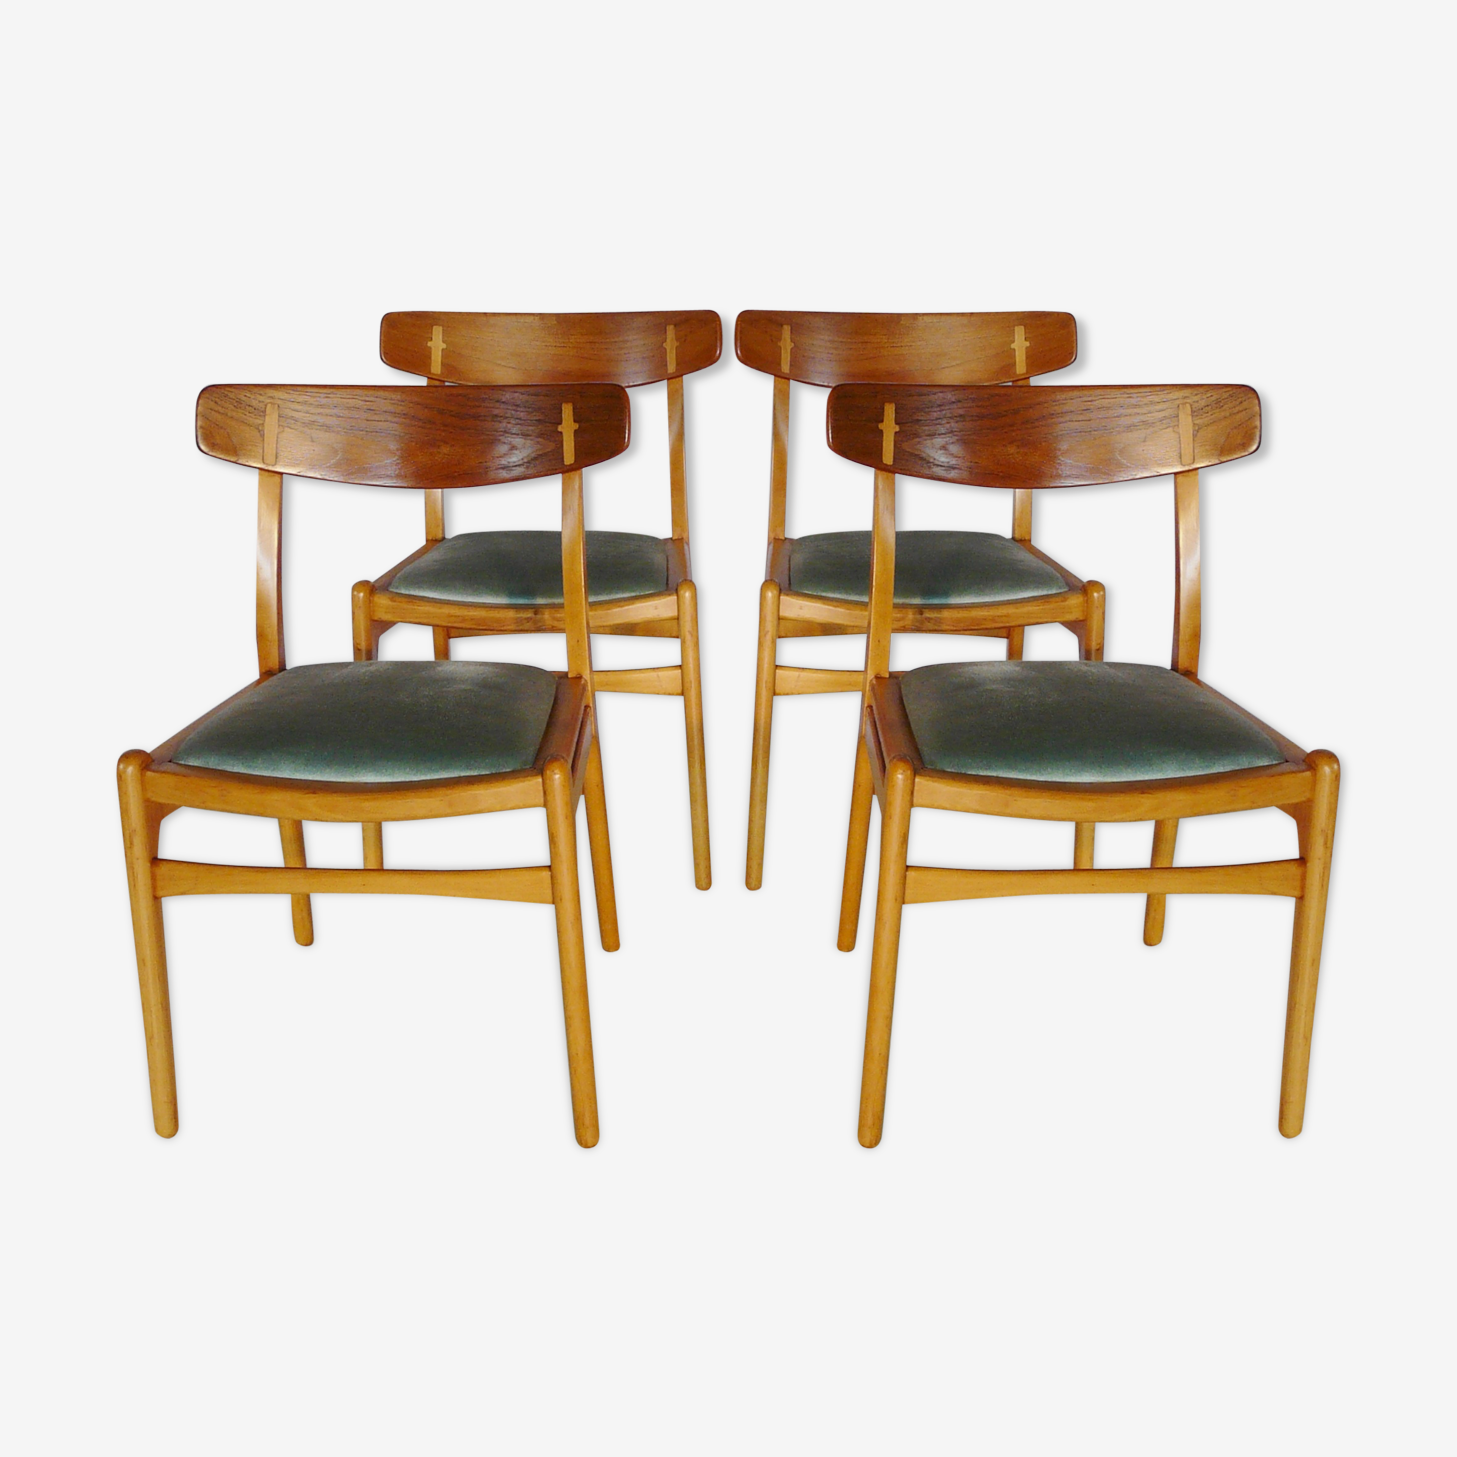 Set of four Danish design chairs in blond wood